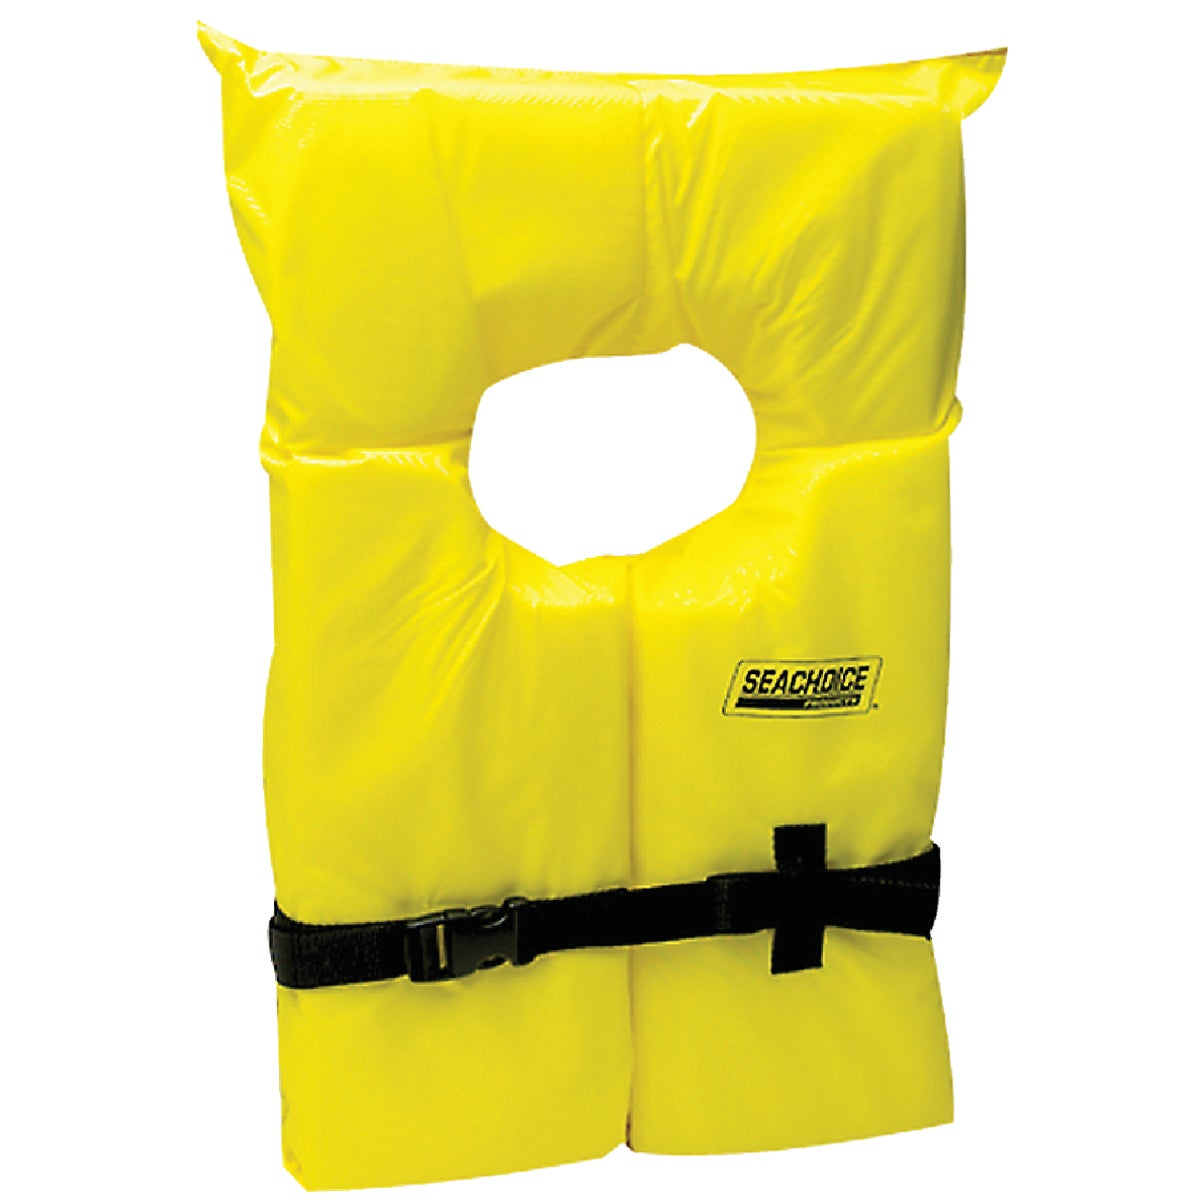 ADULT LIFE VEST - 86020 by Seachoice Prod